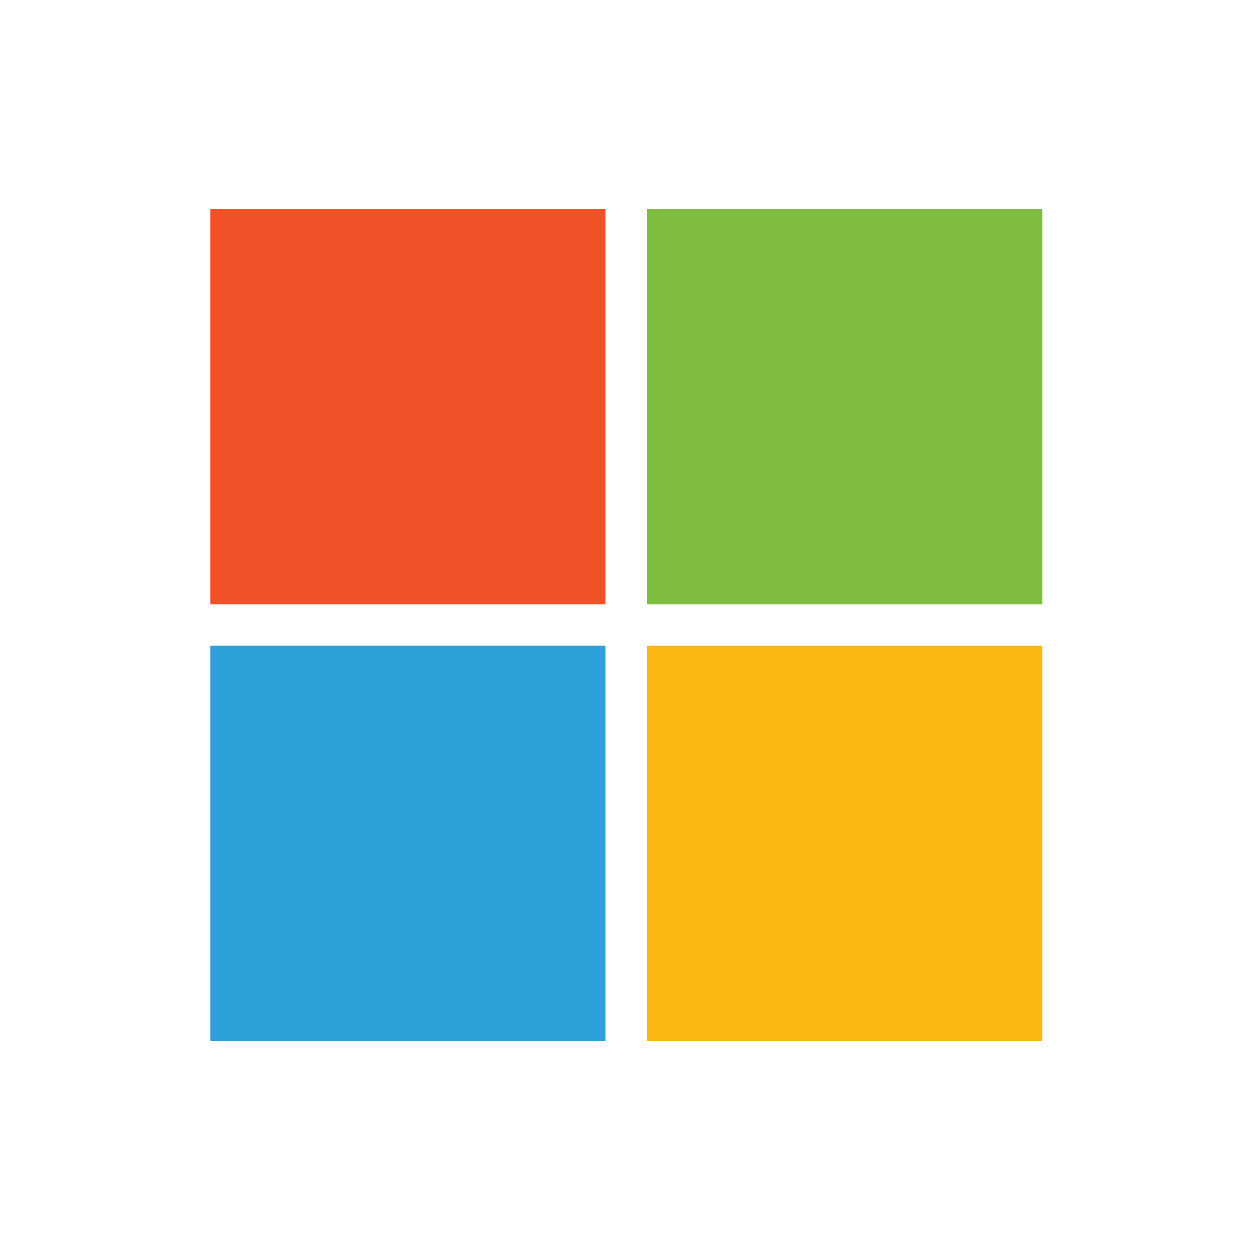 icon-microsoft-01.png